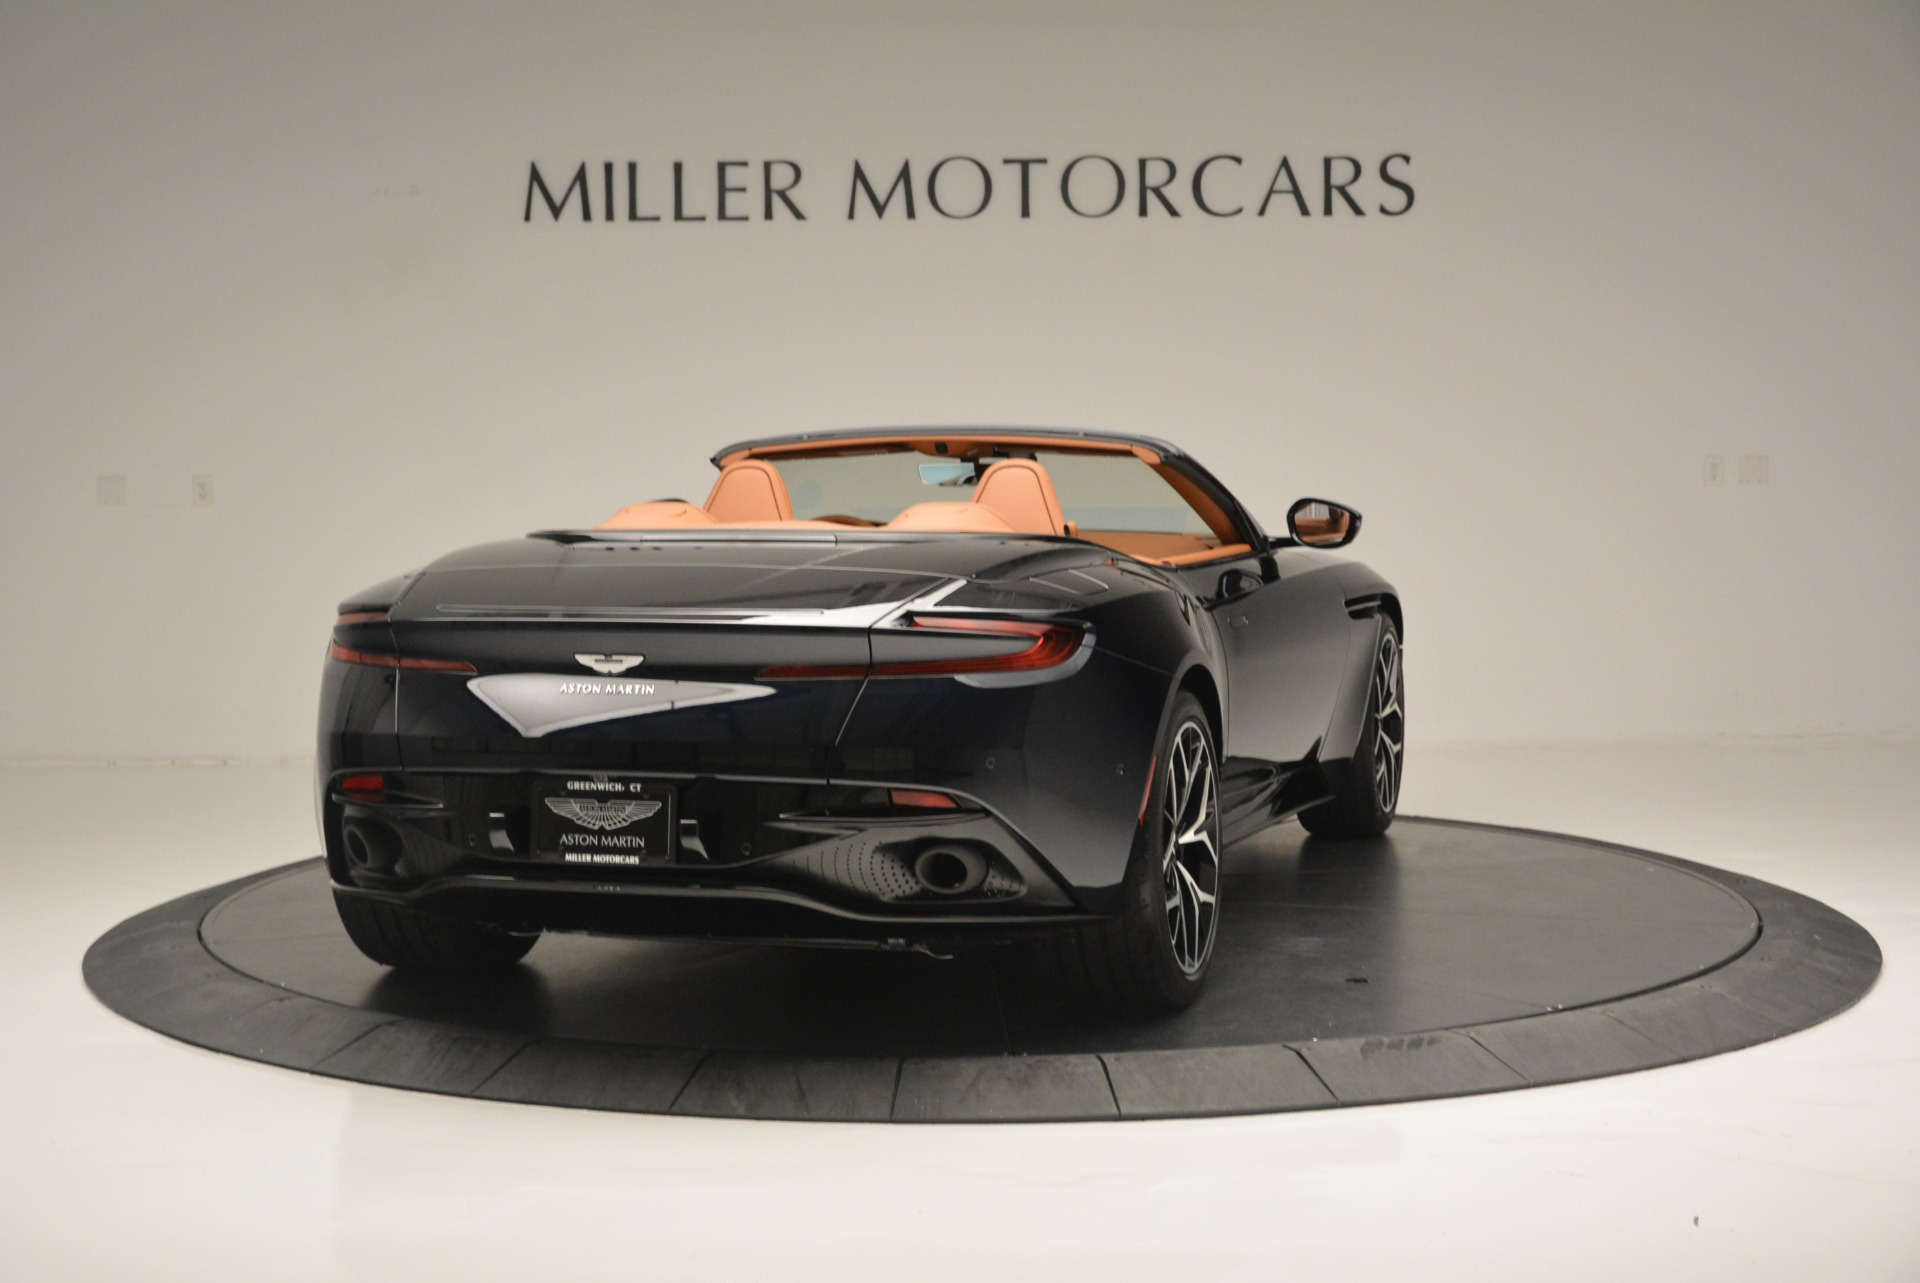 New 2019 Aston Martin DB11 Volante Volante For Sale In Greenwich, CT 2450_p7